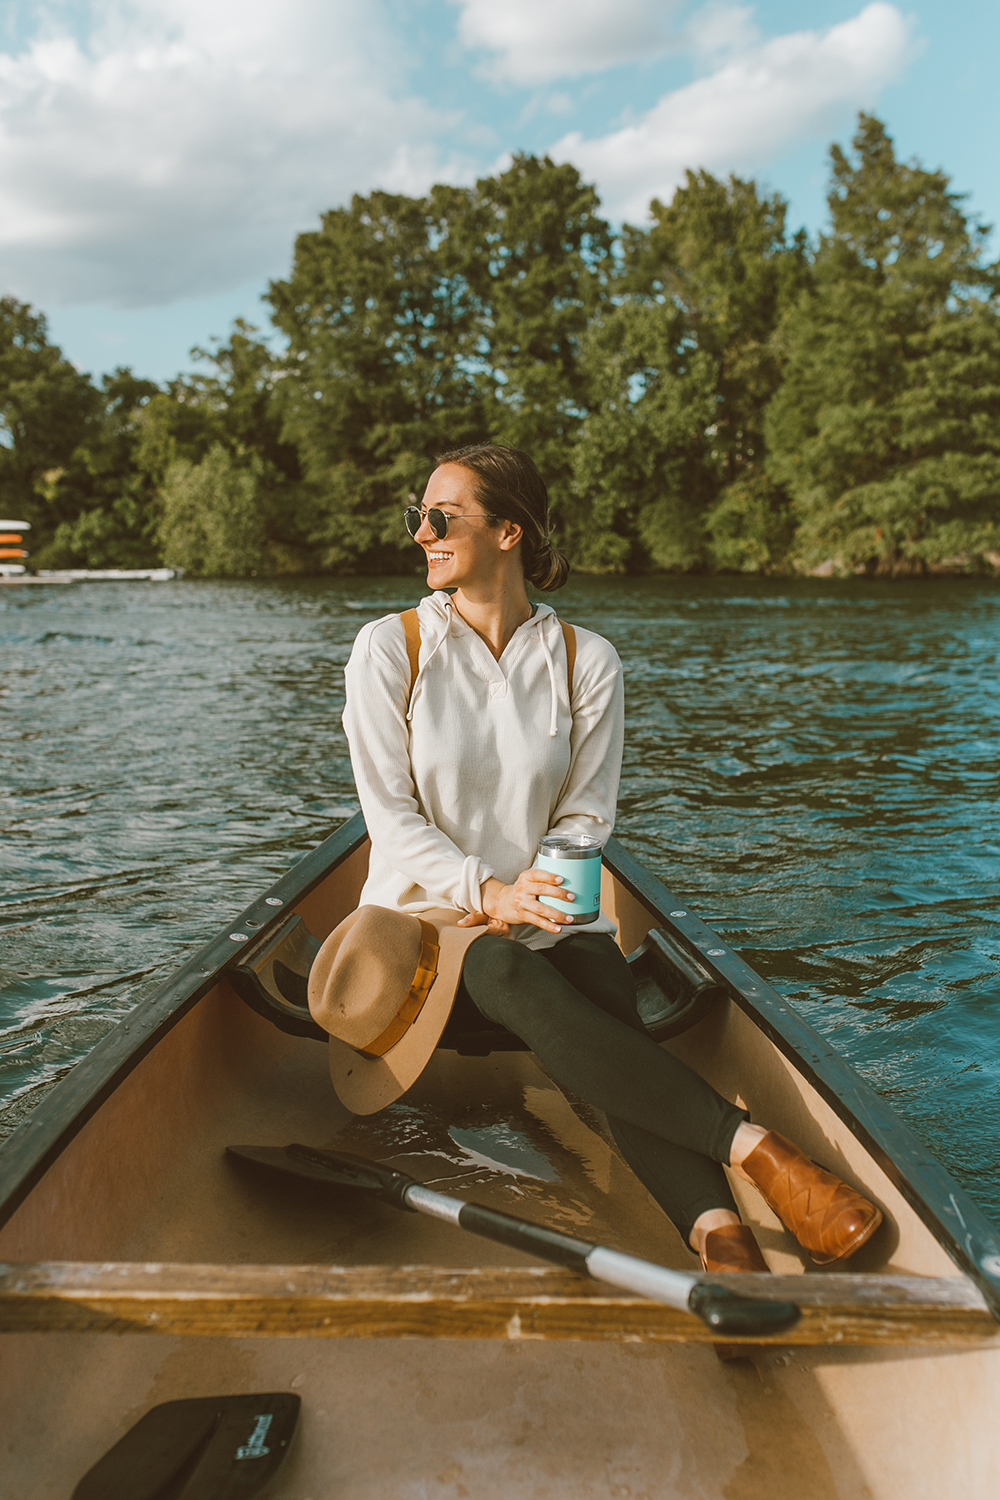 livvyland-blog-olivia-watson-canoe-lady-bird-lake-austin-texas-lifestyle-fashion-blogger-backcountry-patagonia-waffle-hooded-knit-tunic-6